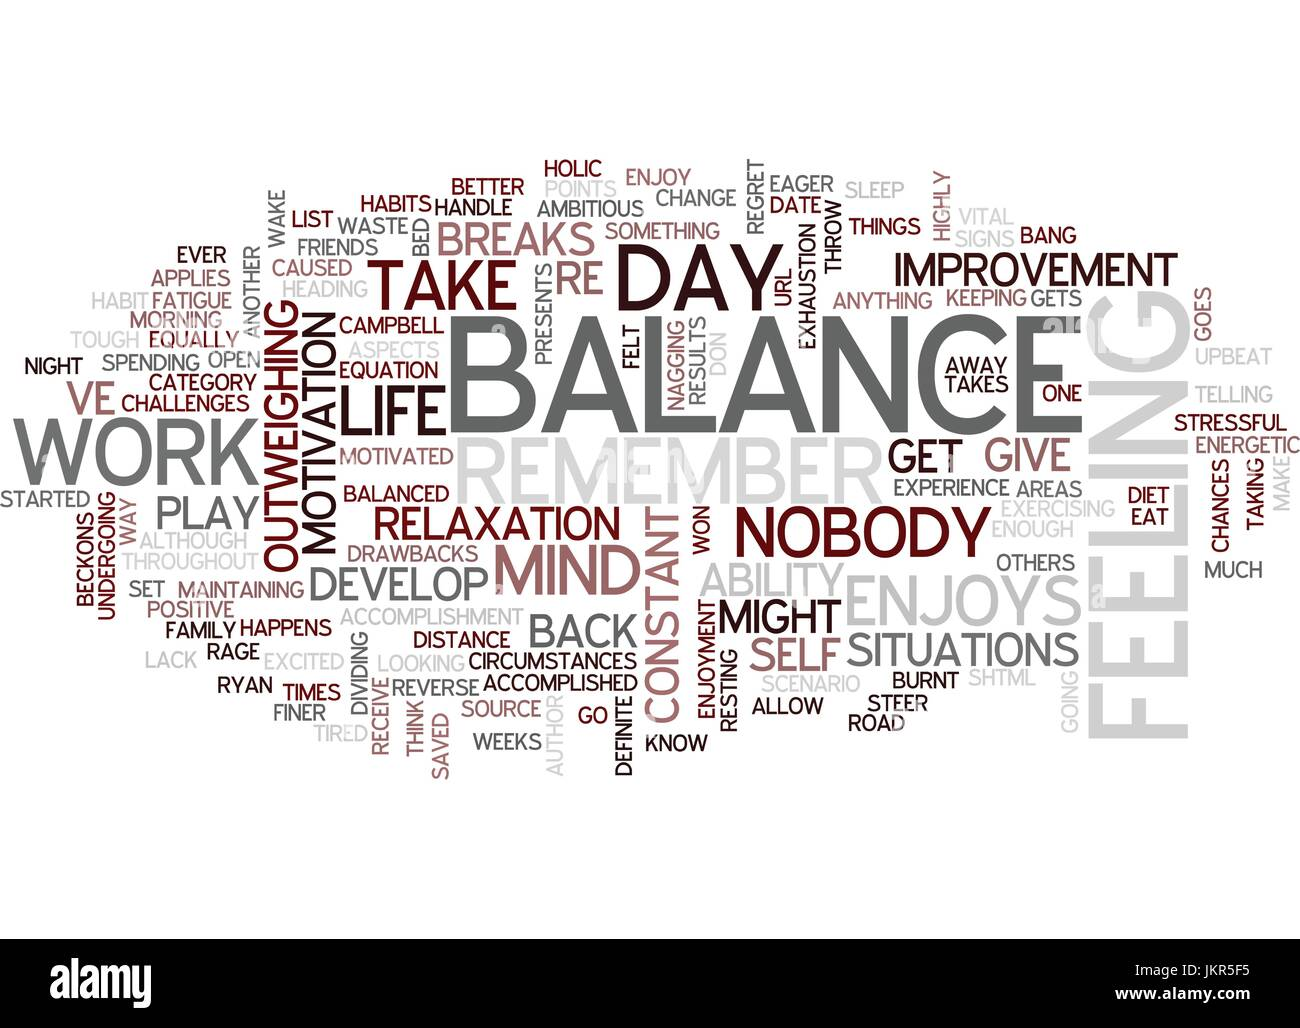 THE BALANCE OF BALANCE Text Background Word Cloud Concept - Stock Vector